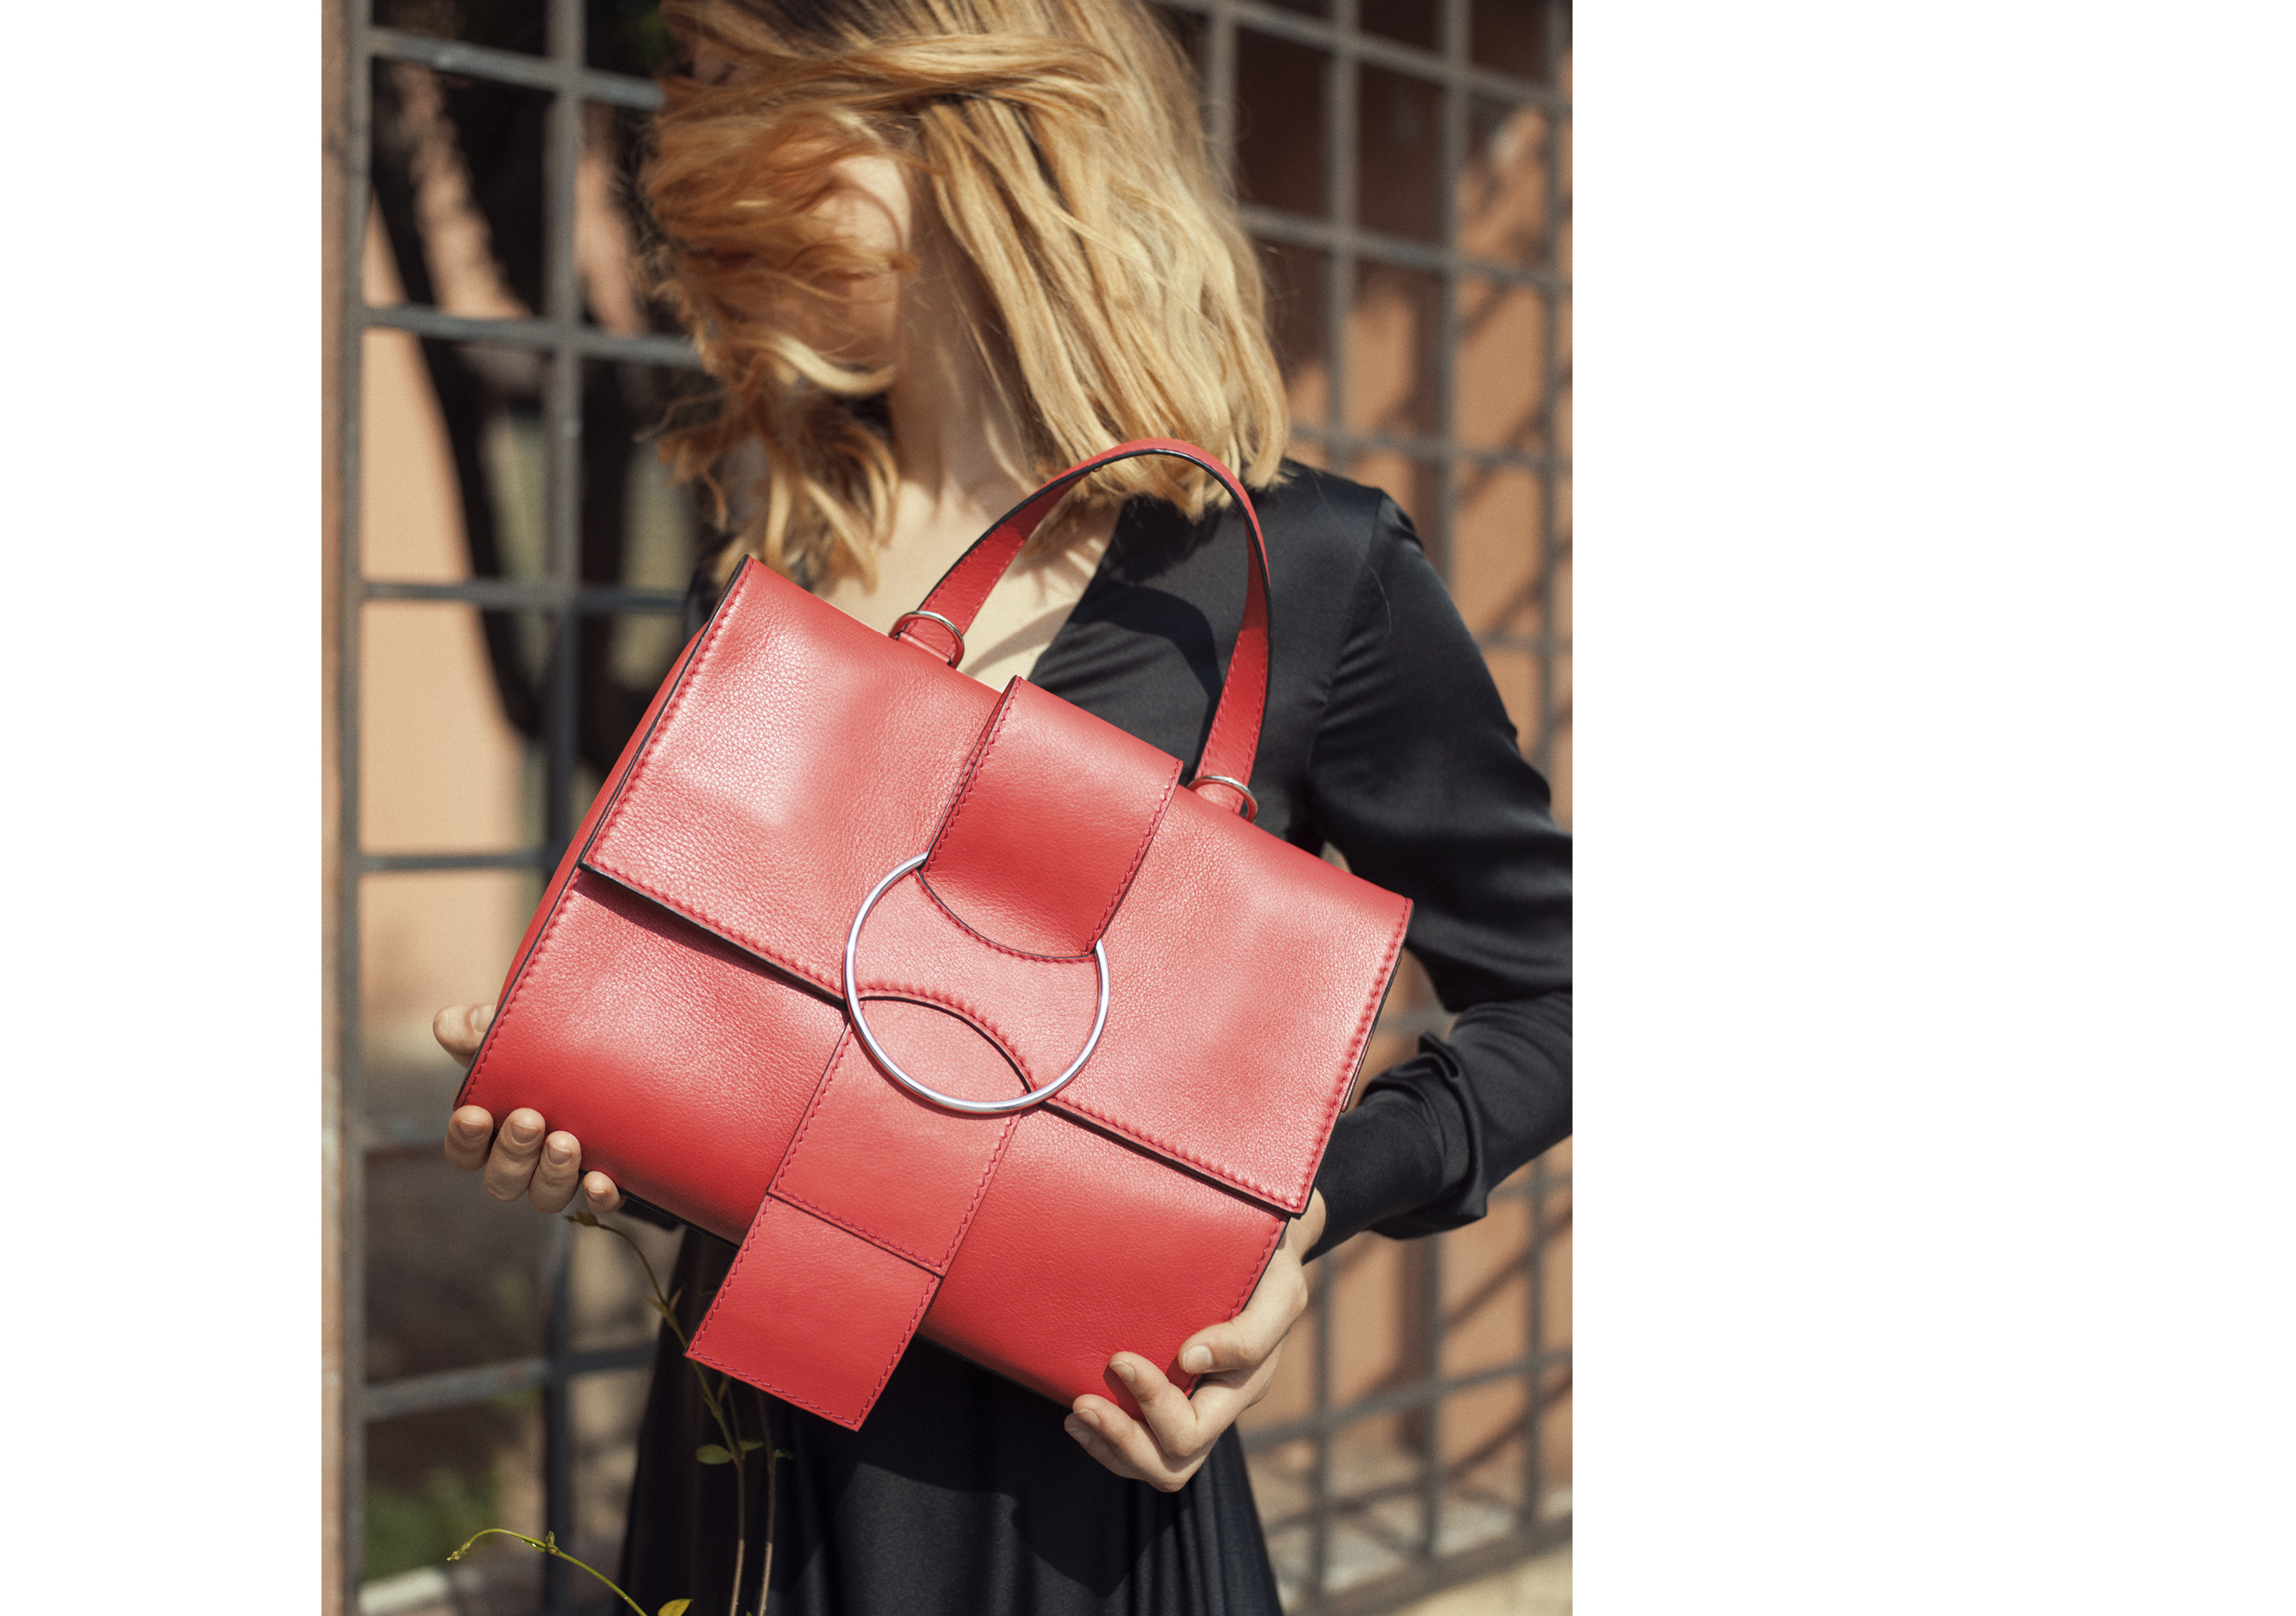 OTTONEmilano, bag, handbag, ss18, Karren,leather,made in italy,24h,shoulder bag,totebag,shopping, top handle, black,red,oversize ring,strap,bow,ribbon,women,minimal